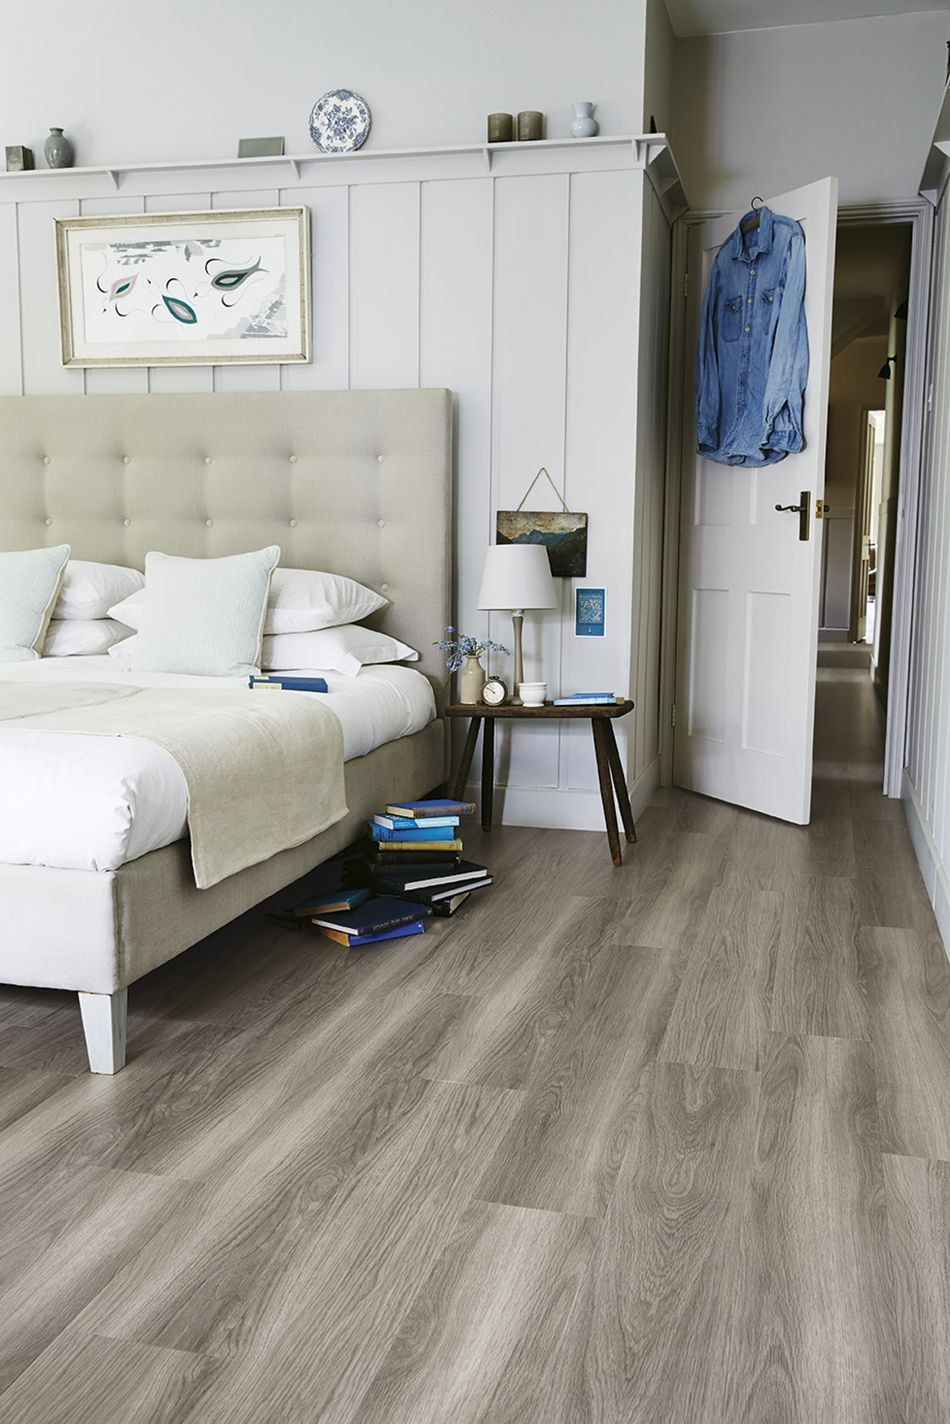 A Light And Bright Modern Bedroom With Lvt Wood Effect Flooring Get Your Flooring Here Www Michel John Co U Vinyl Flooring Lvt Flooring Luxury Vinyl Flooring